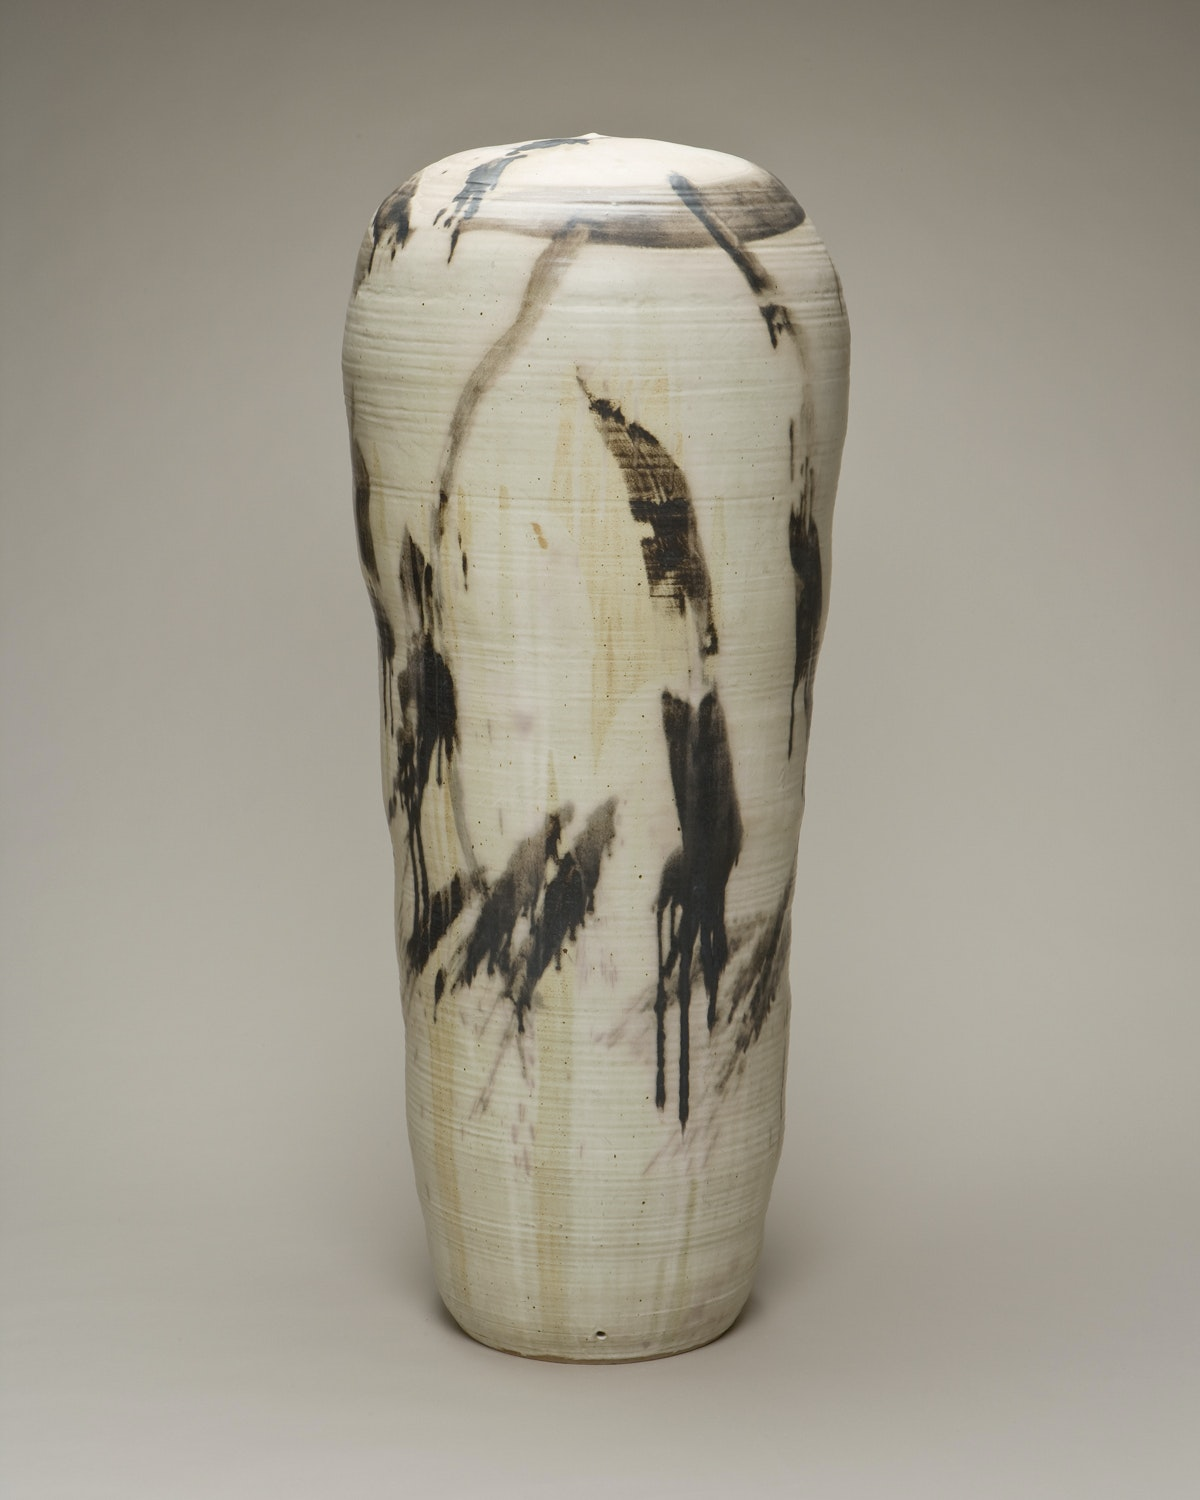 Light colored tall cylindrical stoneware vessel with darker leaflife details